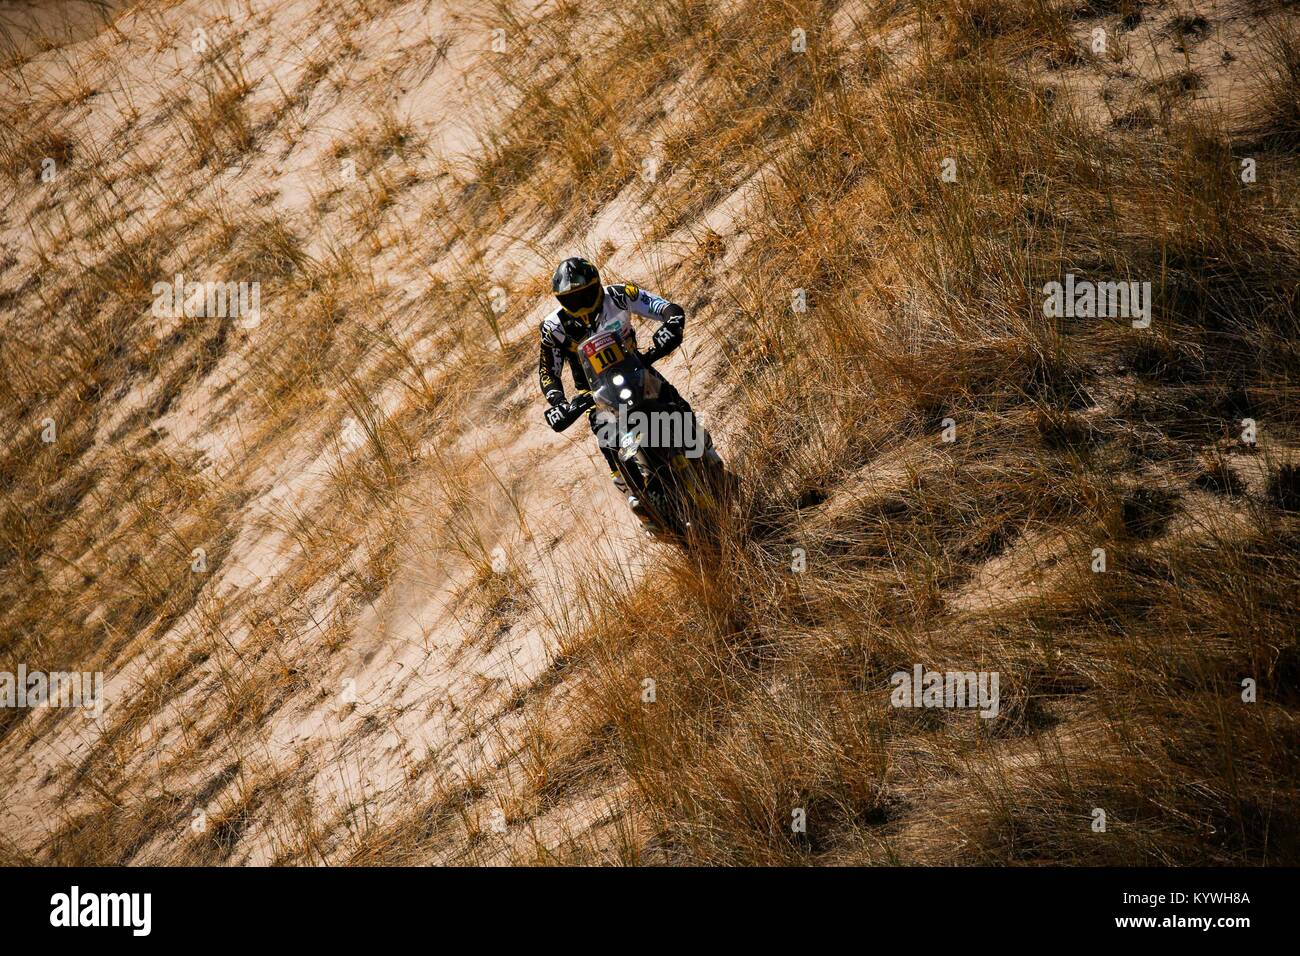 Salta, Argentina. 16th Jan, 2018. Chilean Pablo Quintanilla of Husqvarna competes during the 10th stage of the Dakar - Stock Image